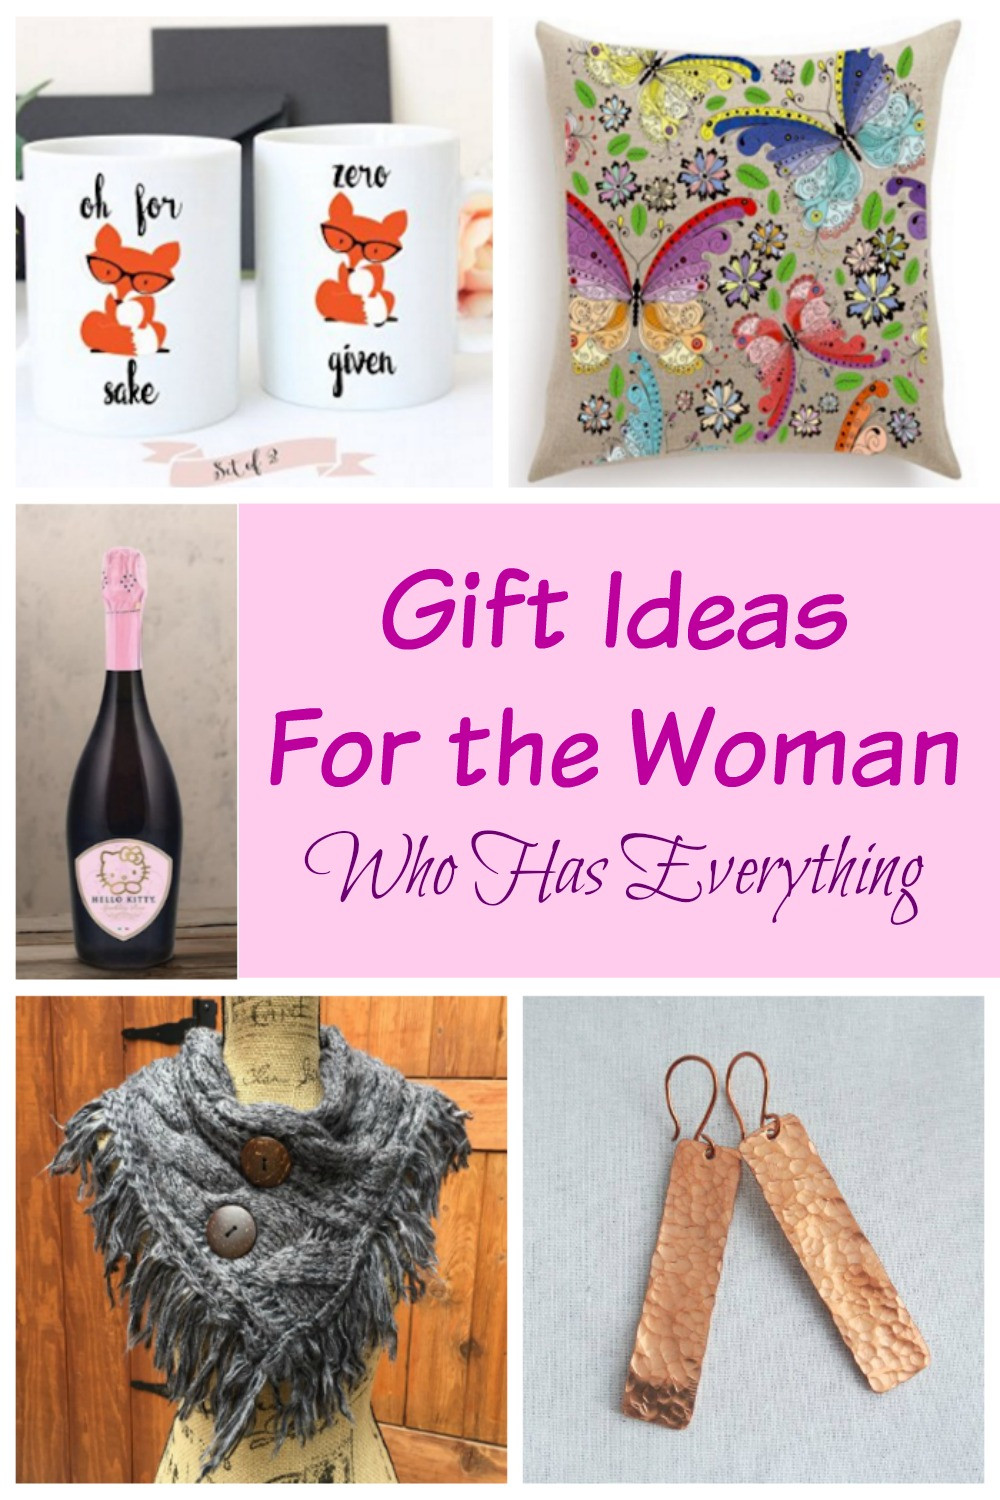 Christmas Gift Ideas For Woman Who Has Everything  Gift Ideas For The Women Who Has Everything